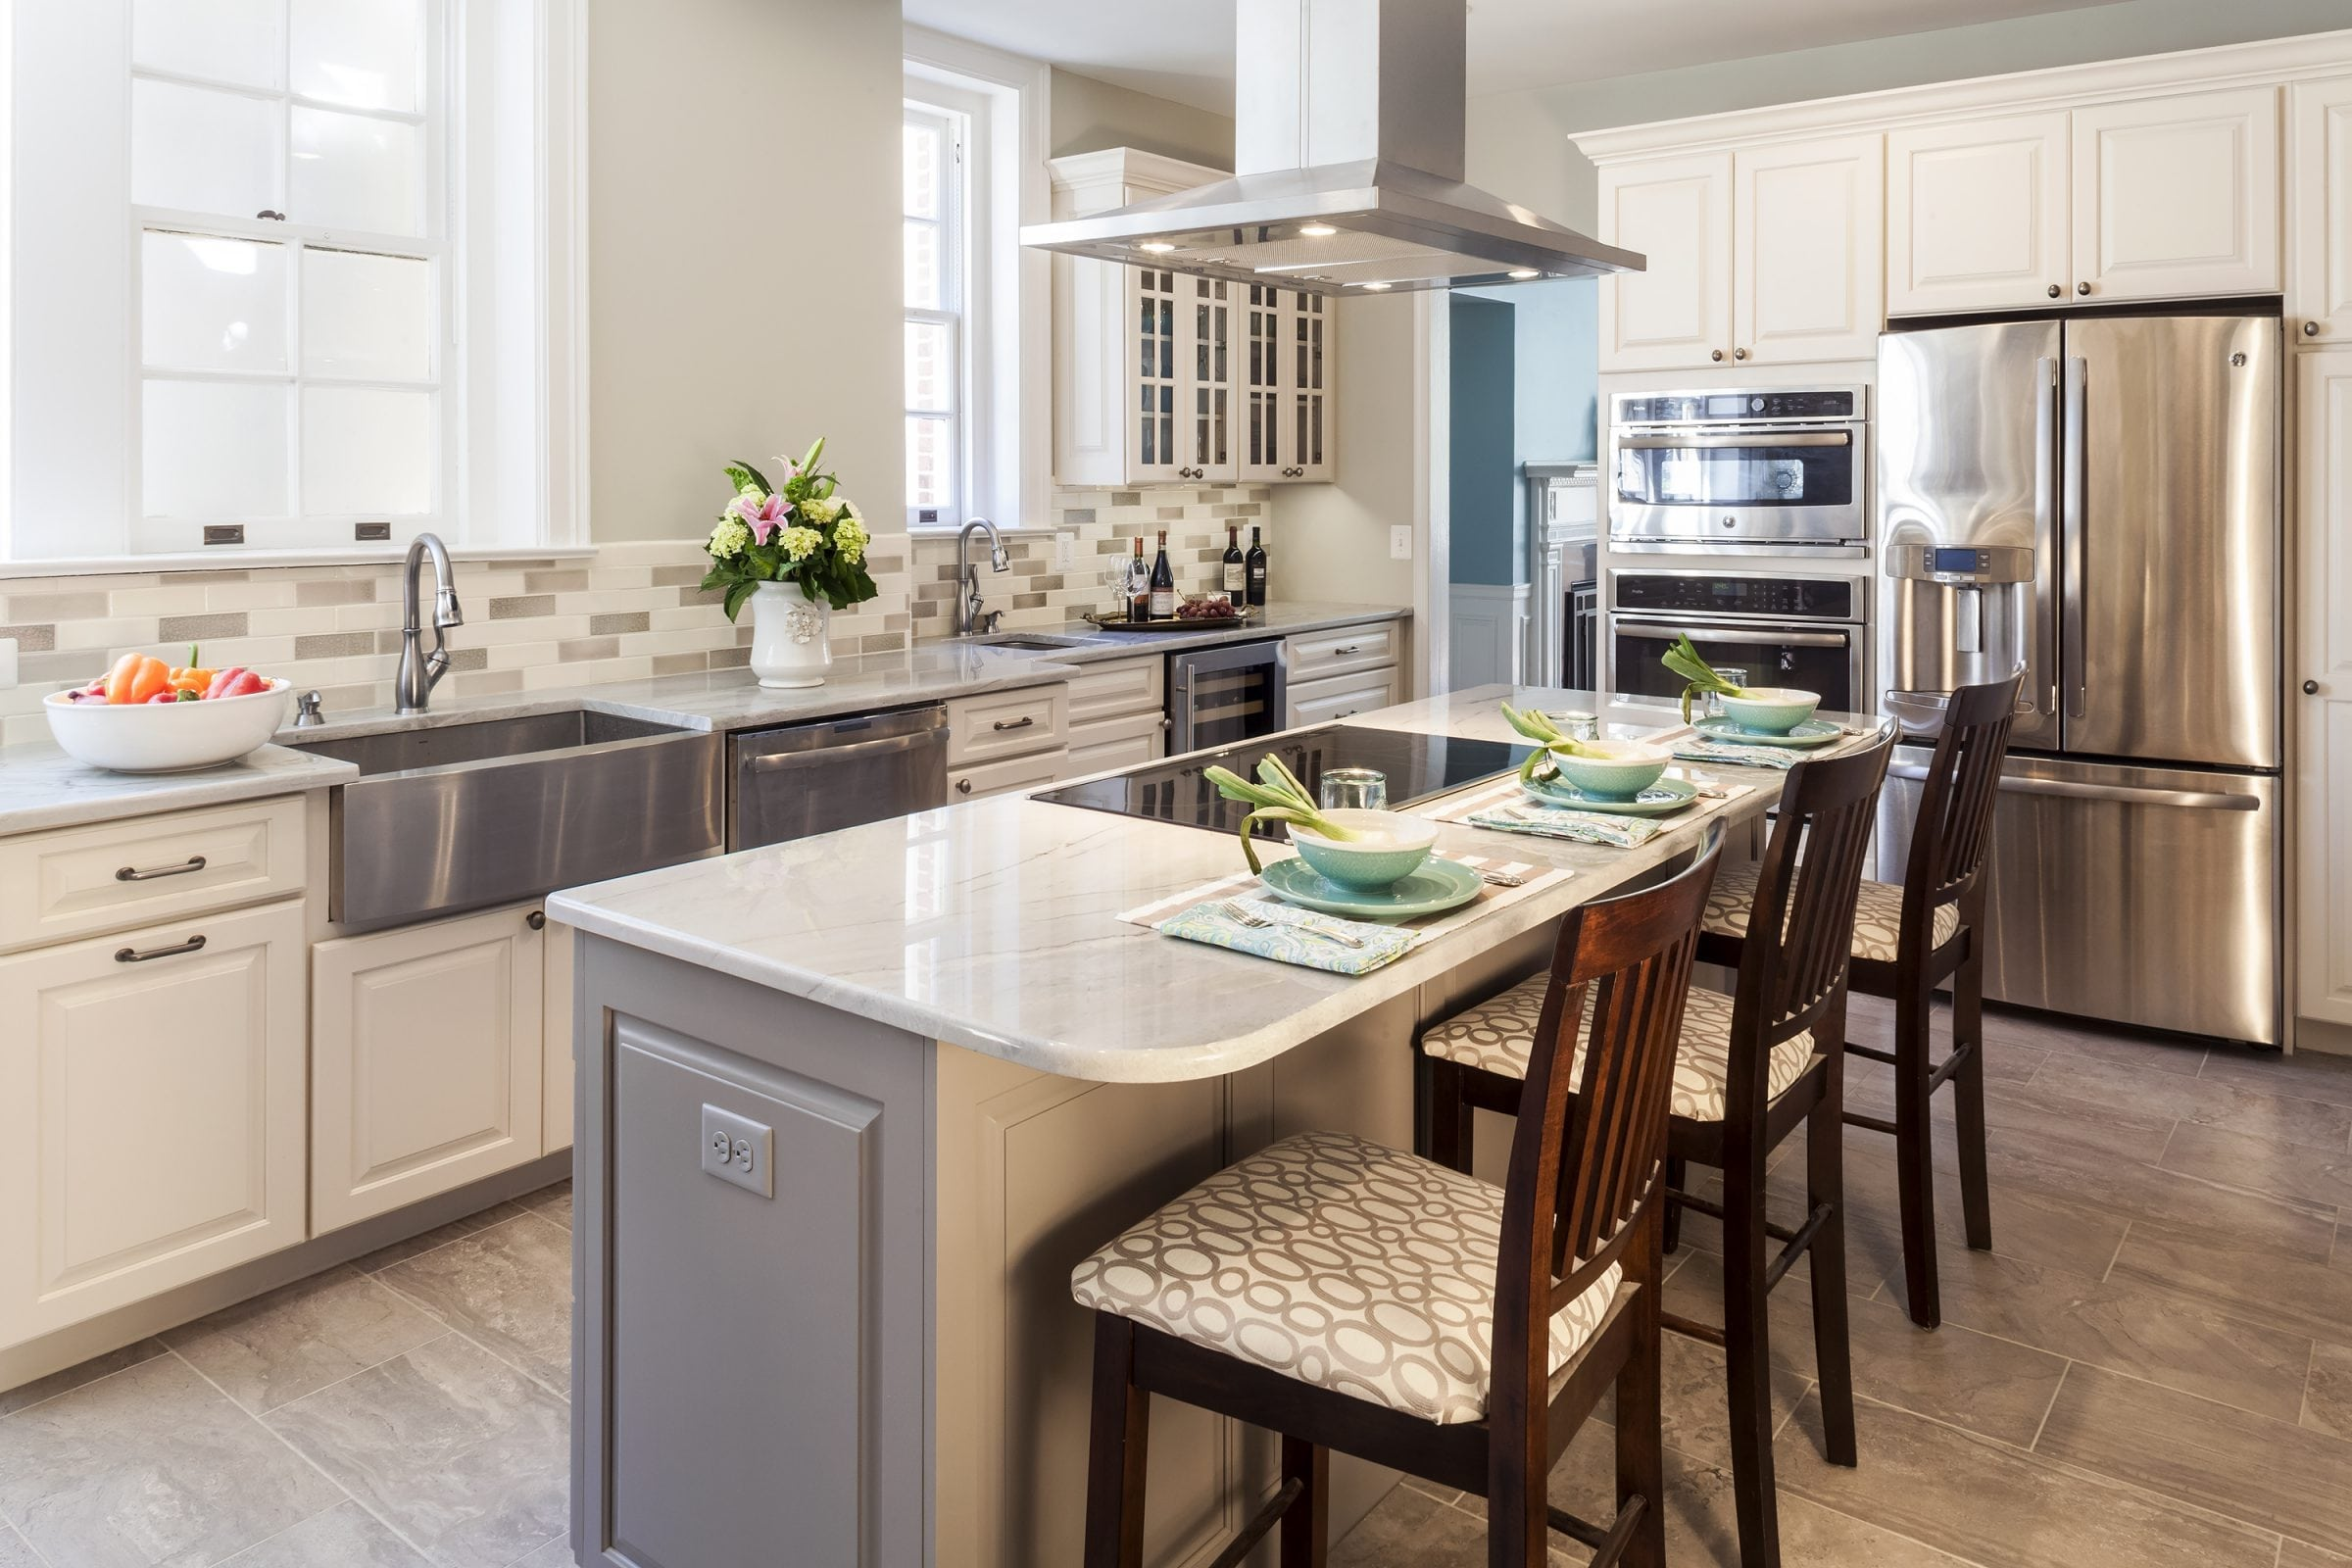 Bright kitchen with large island bar.